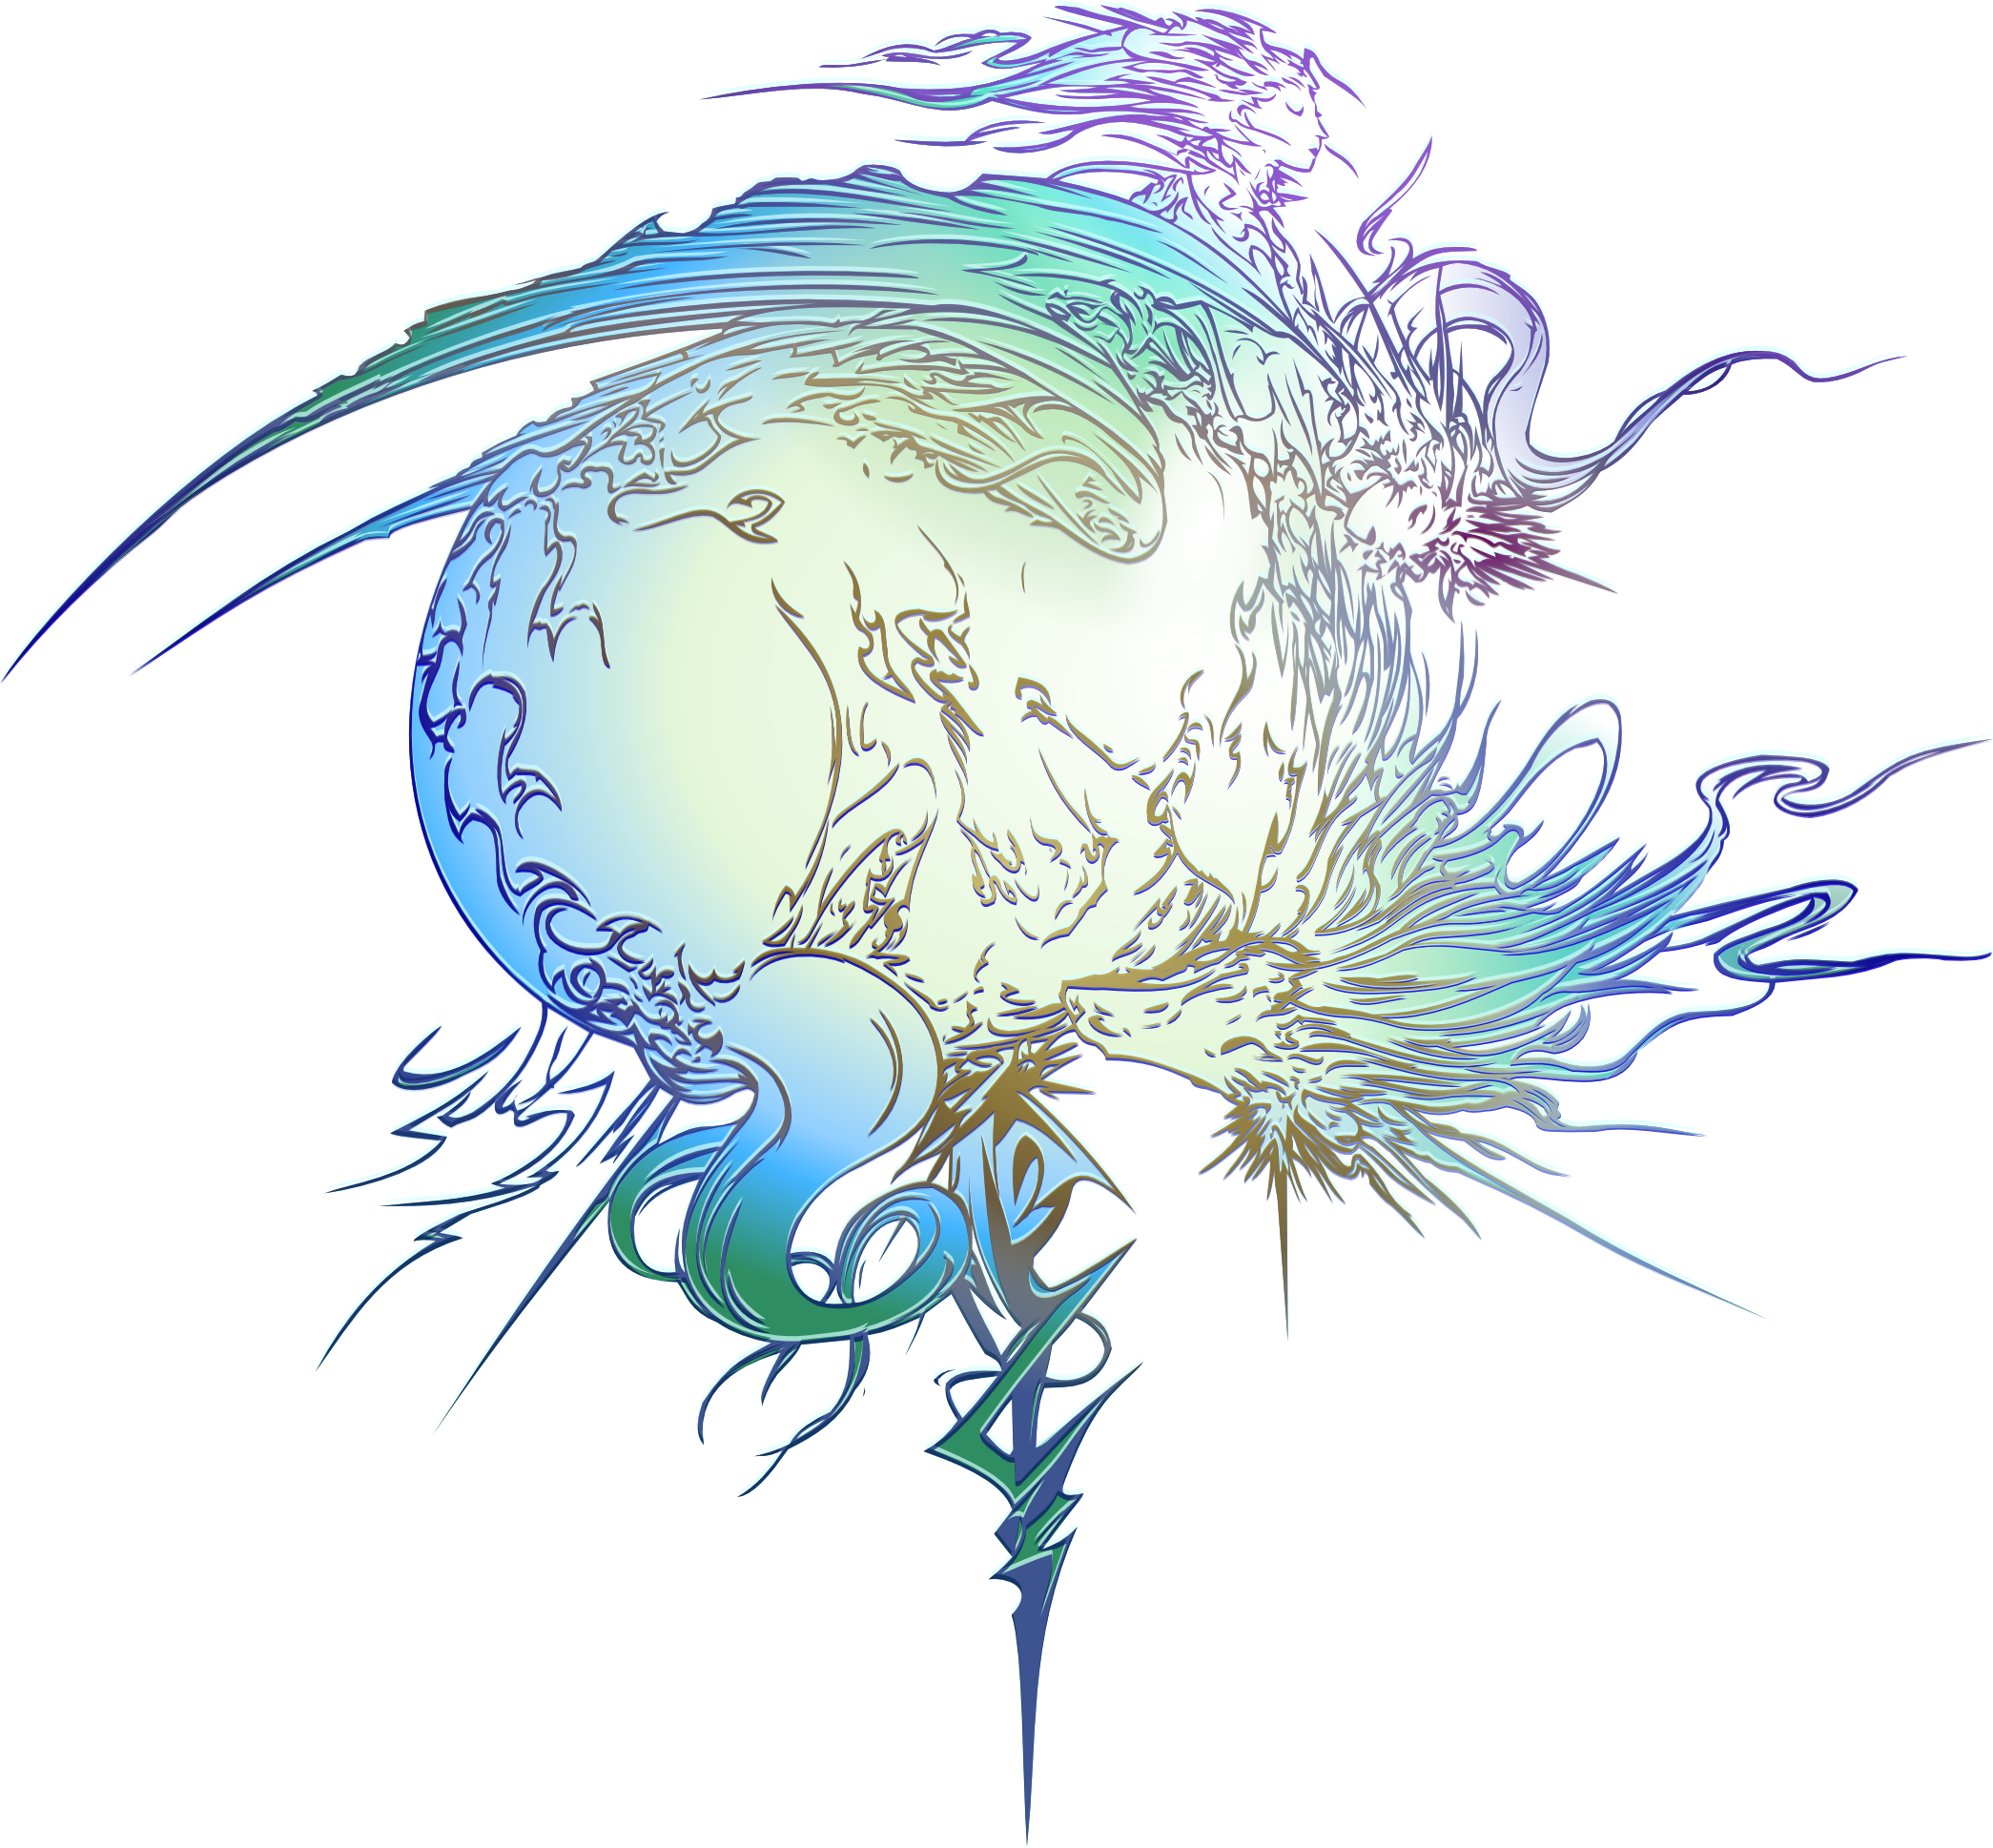 Final Fantasy XIII logo by on